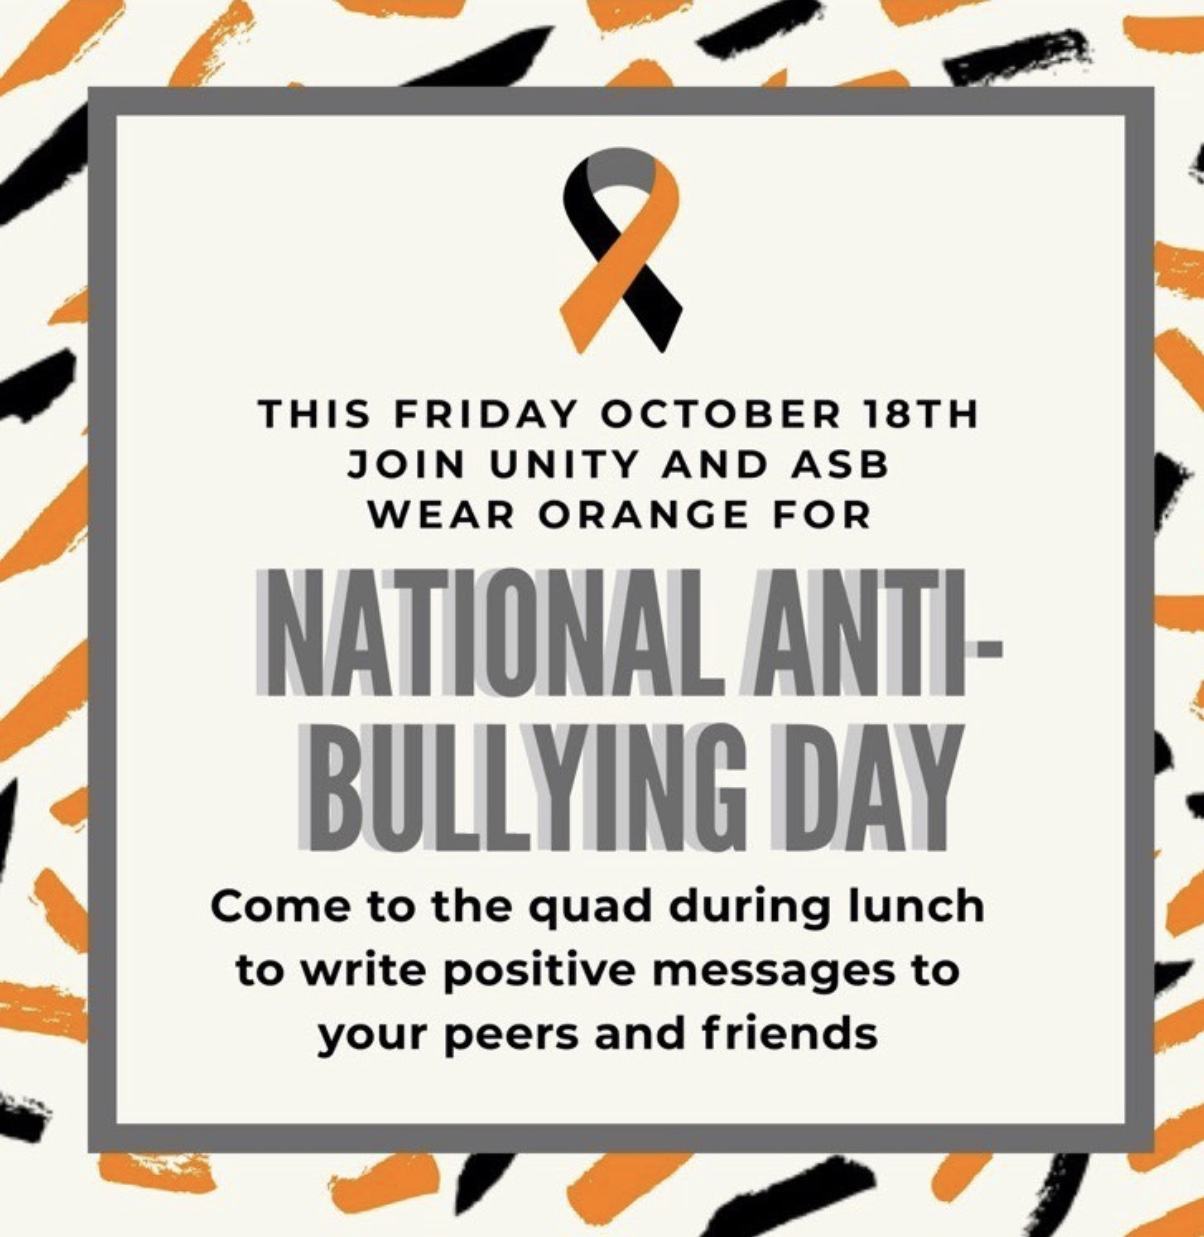 Social Promo that Unity and ASB have been posting advertise to wear orange and participate in the activity at both lunches